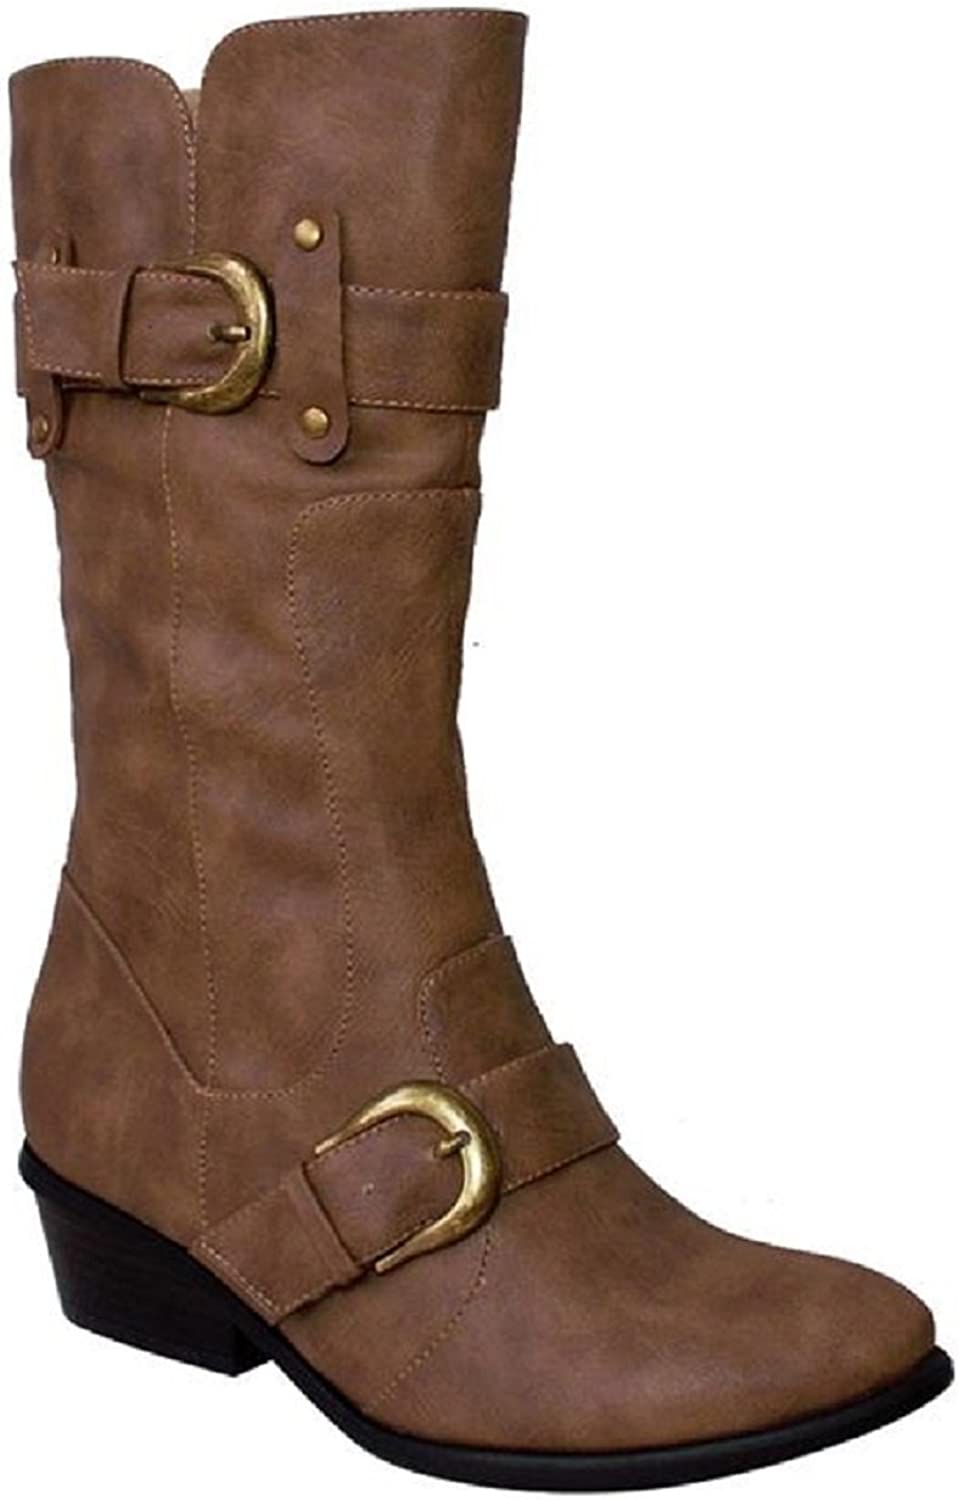 De Blossom Collection Kiosk-10 Women's Mid Calf Western Cowboy Leatherette Riding, Equestrian Buckled Boots,